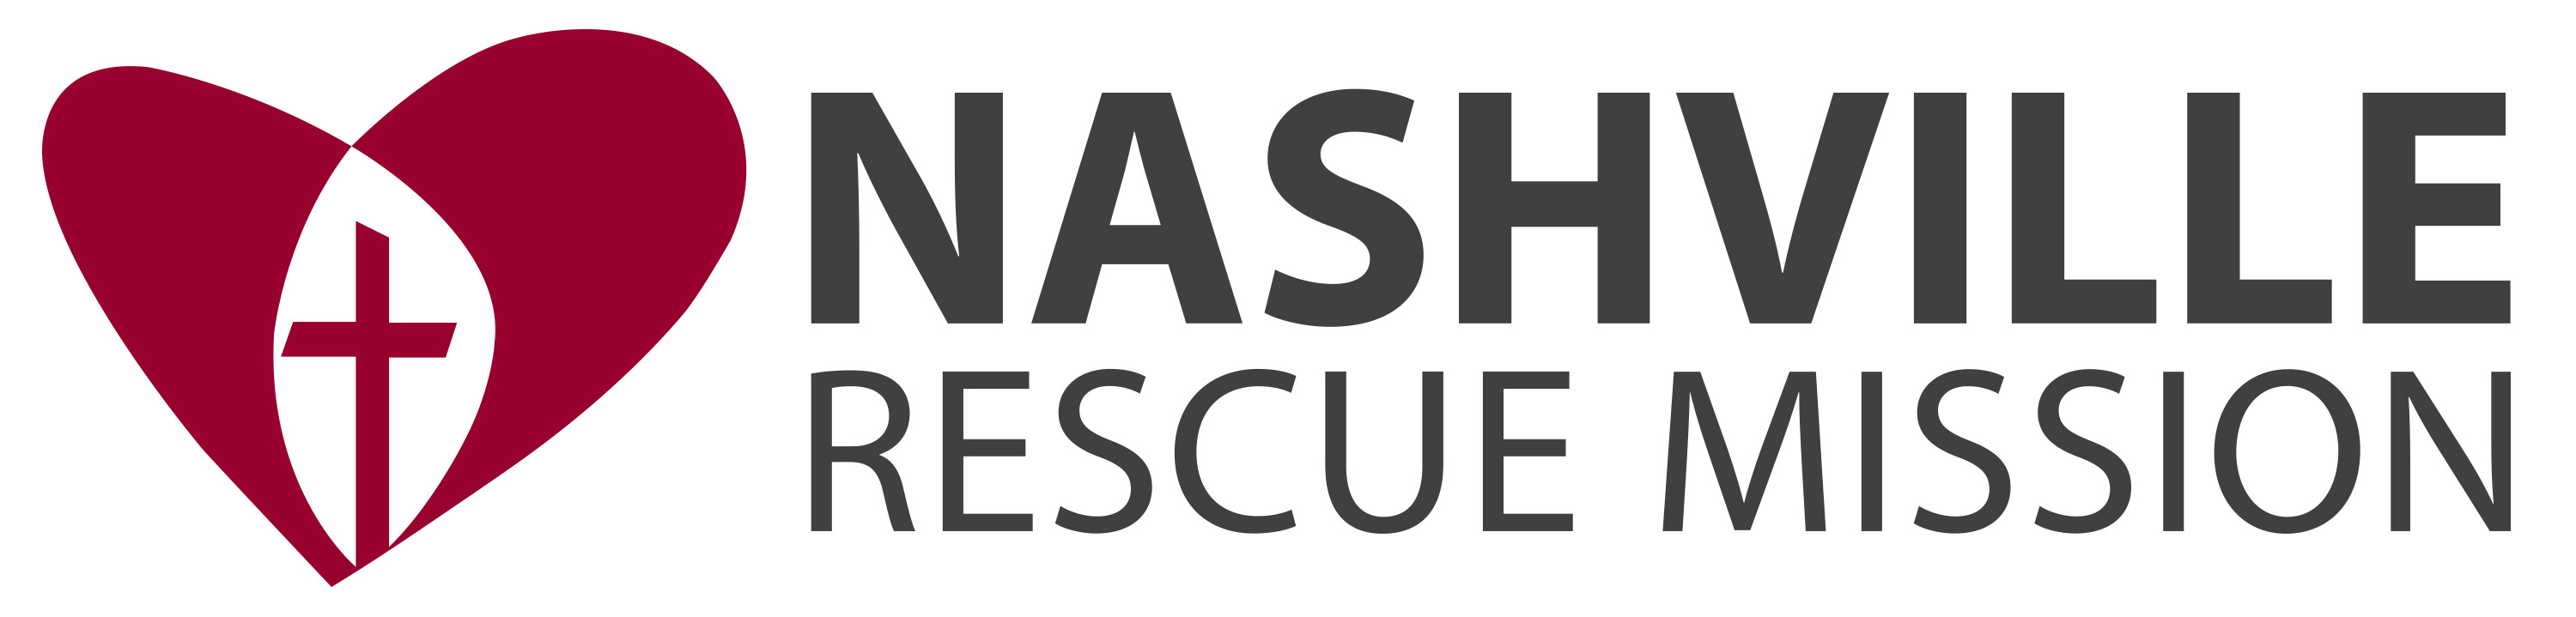 Nashville-Rescue-Mission""